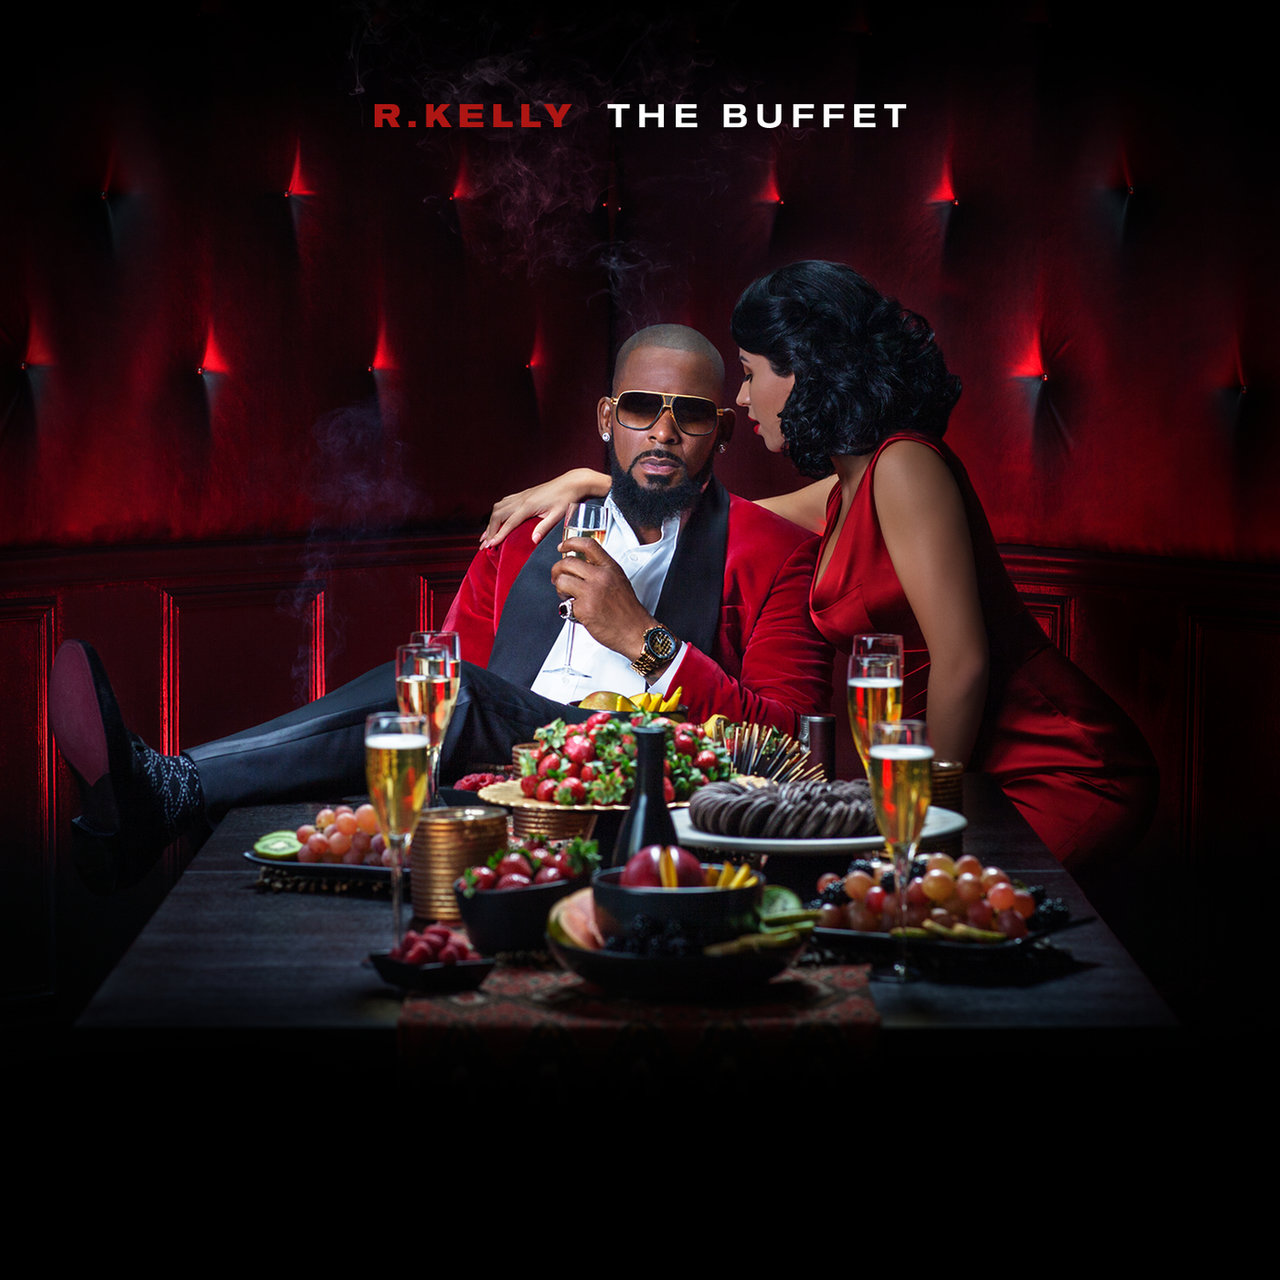 R. Kelly - The Buffet (Deluce Edition)